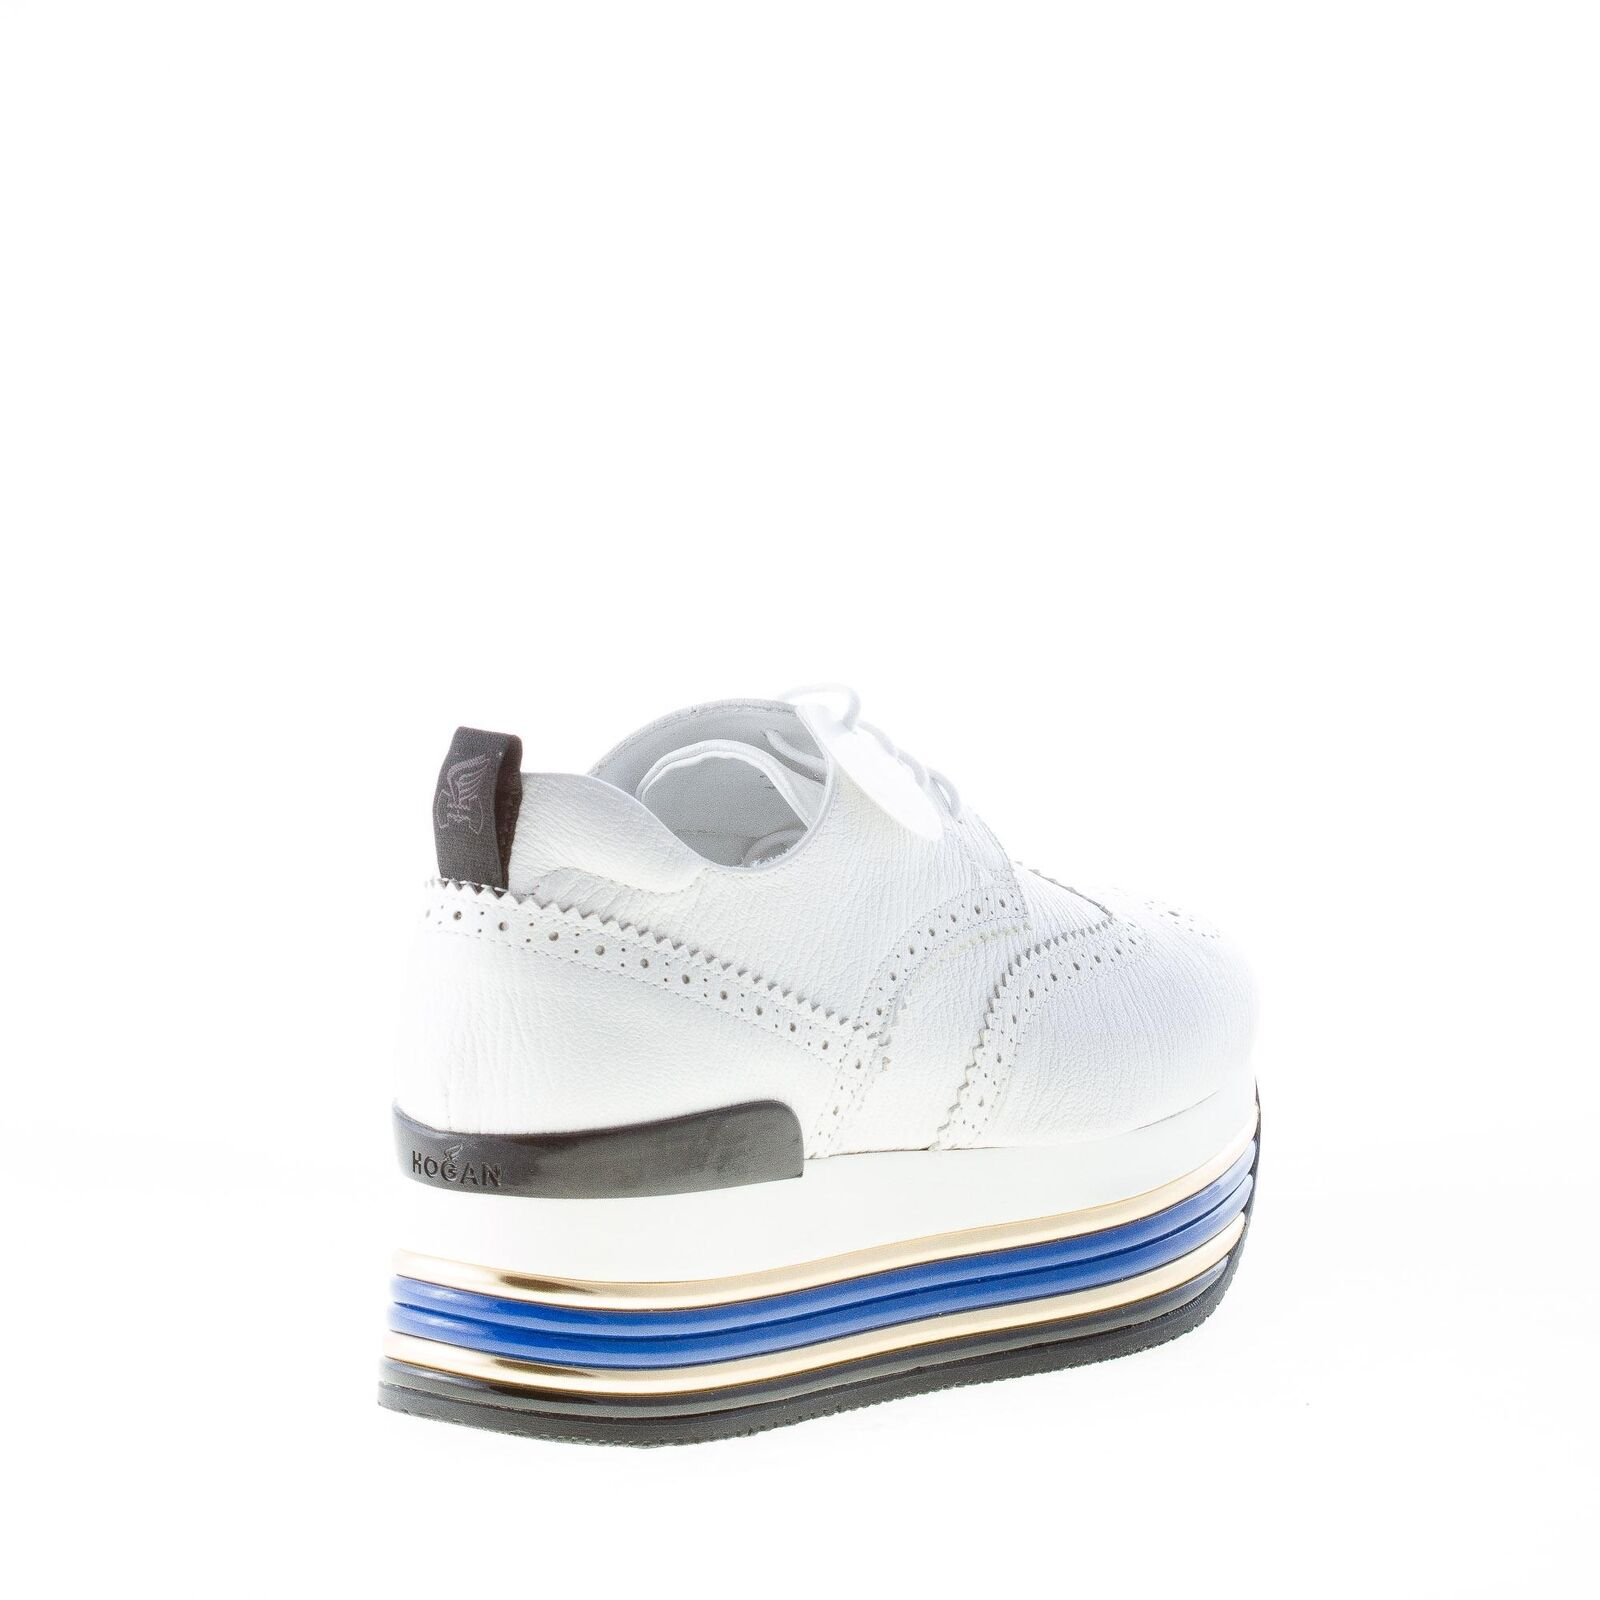 HOGAN femmes chaussures chaussures chaussures Maxi H222 blanc pebbled leather derby with wingtip detail 3eb42d